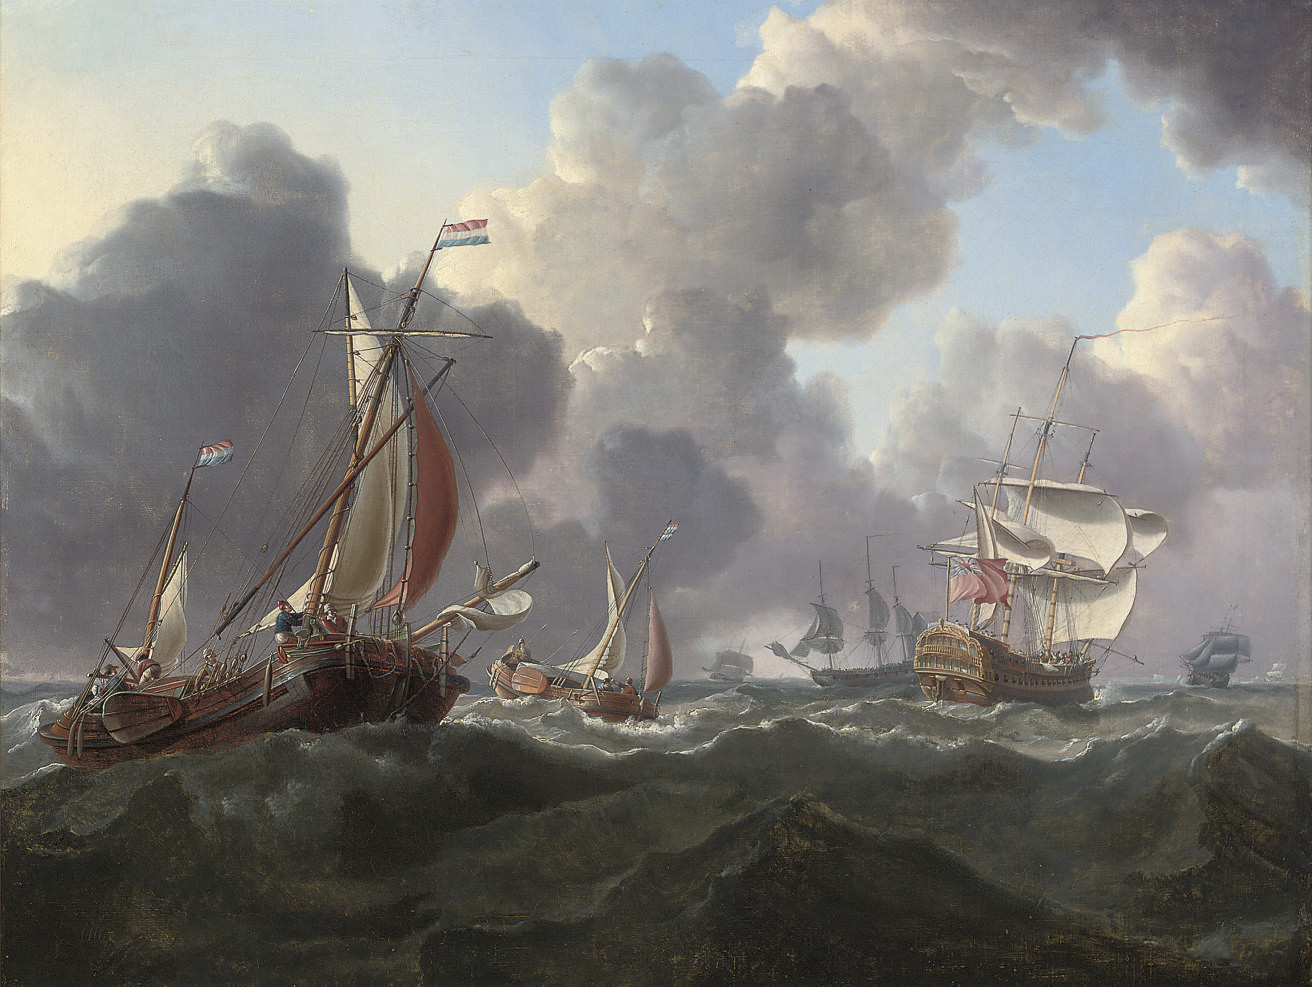 English warships and Dutch hoys in a stiff North Sea breeze